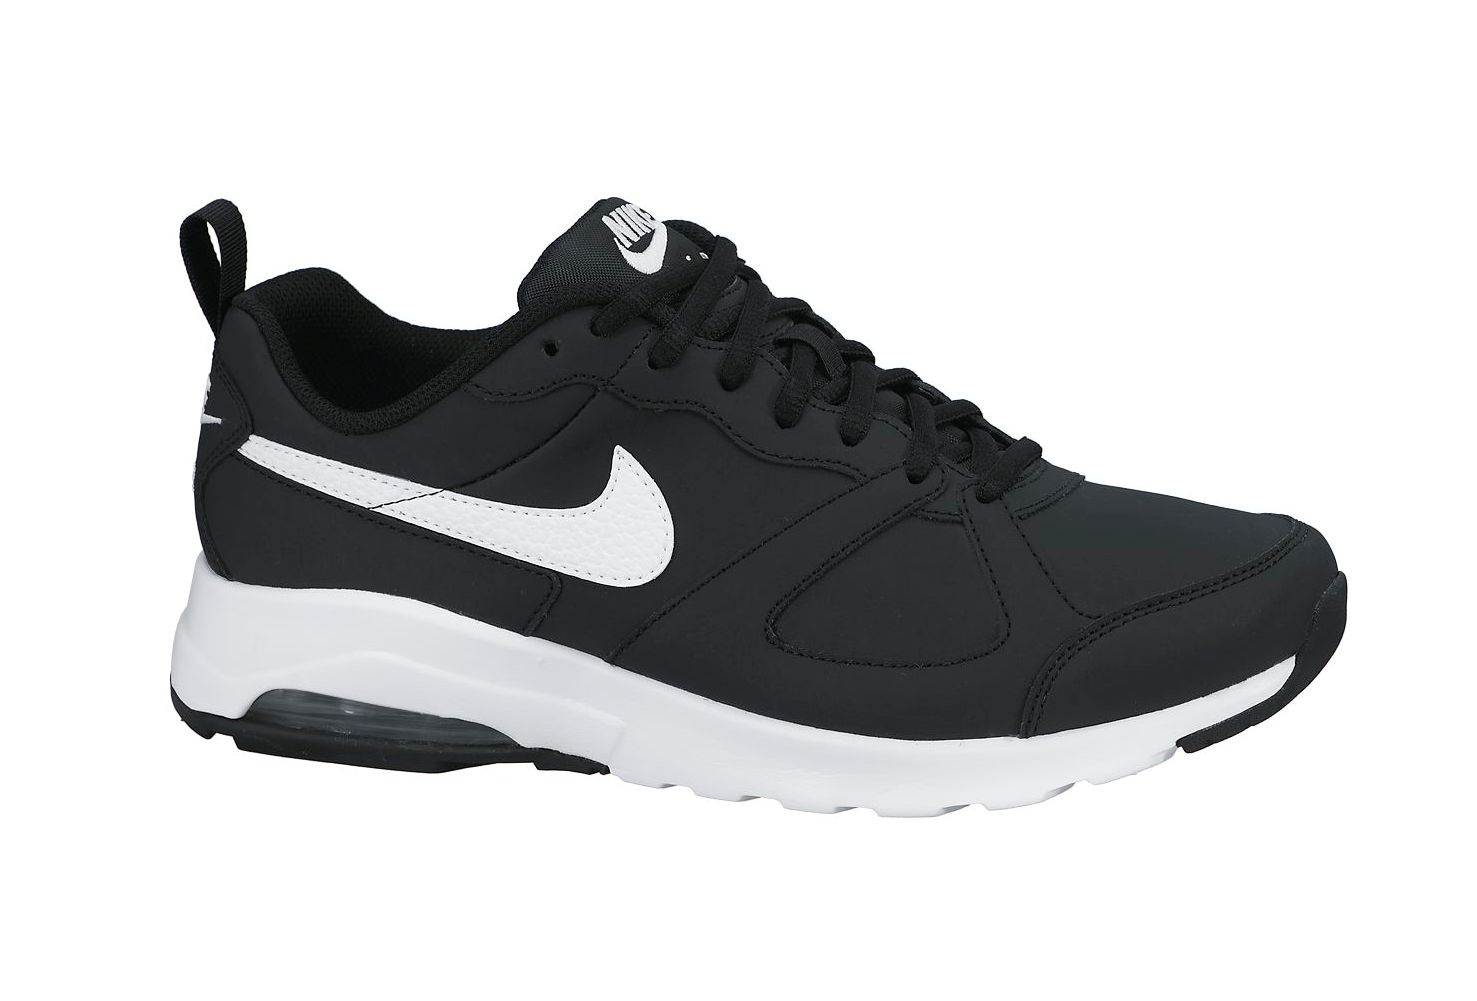 Nike Air Max Muse Men's Running Shoes Black/White